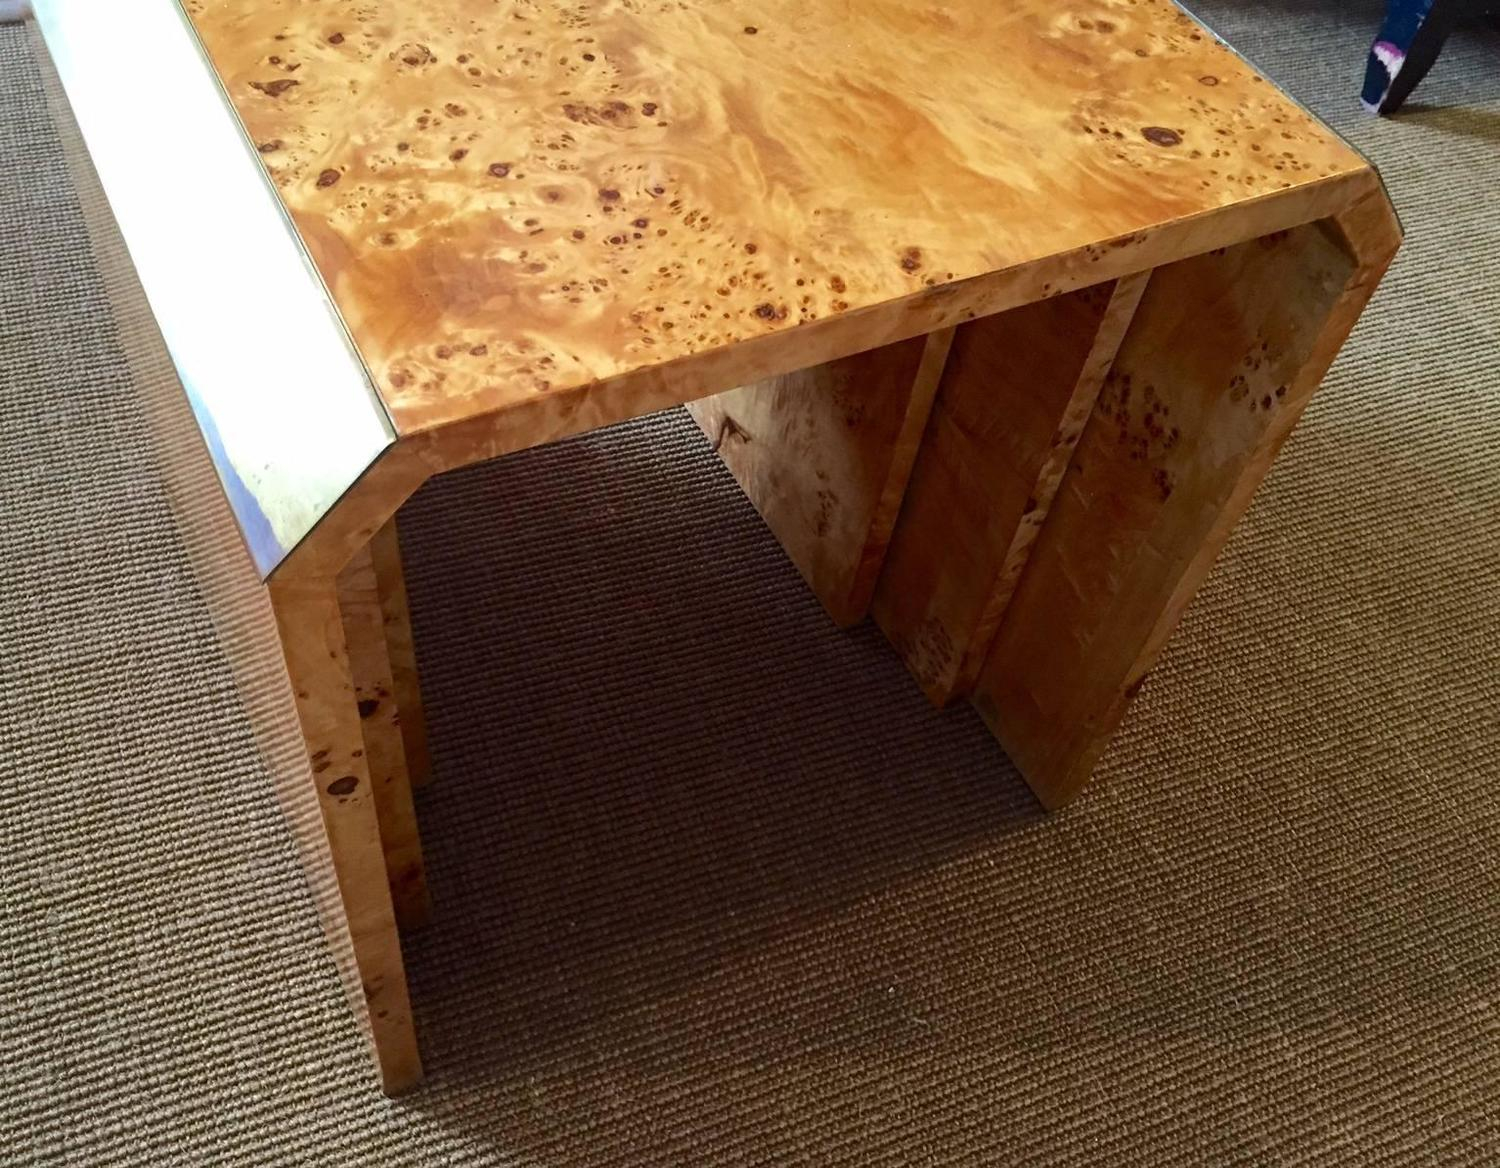 Burl Wood Waterfall Nesting Tables   Set Of 3   Image 5 Of 5